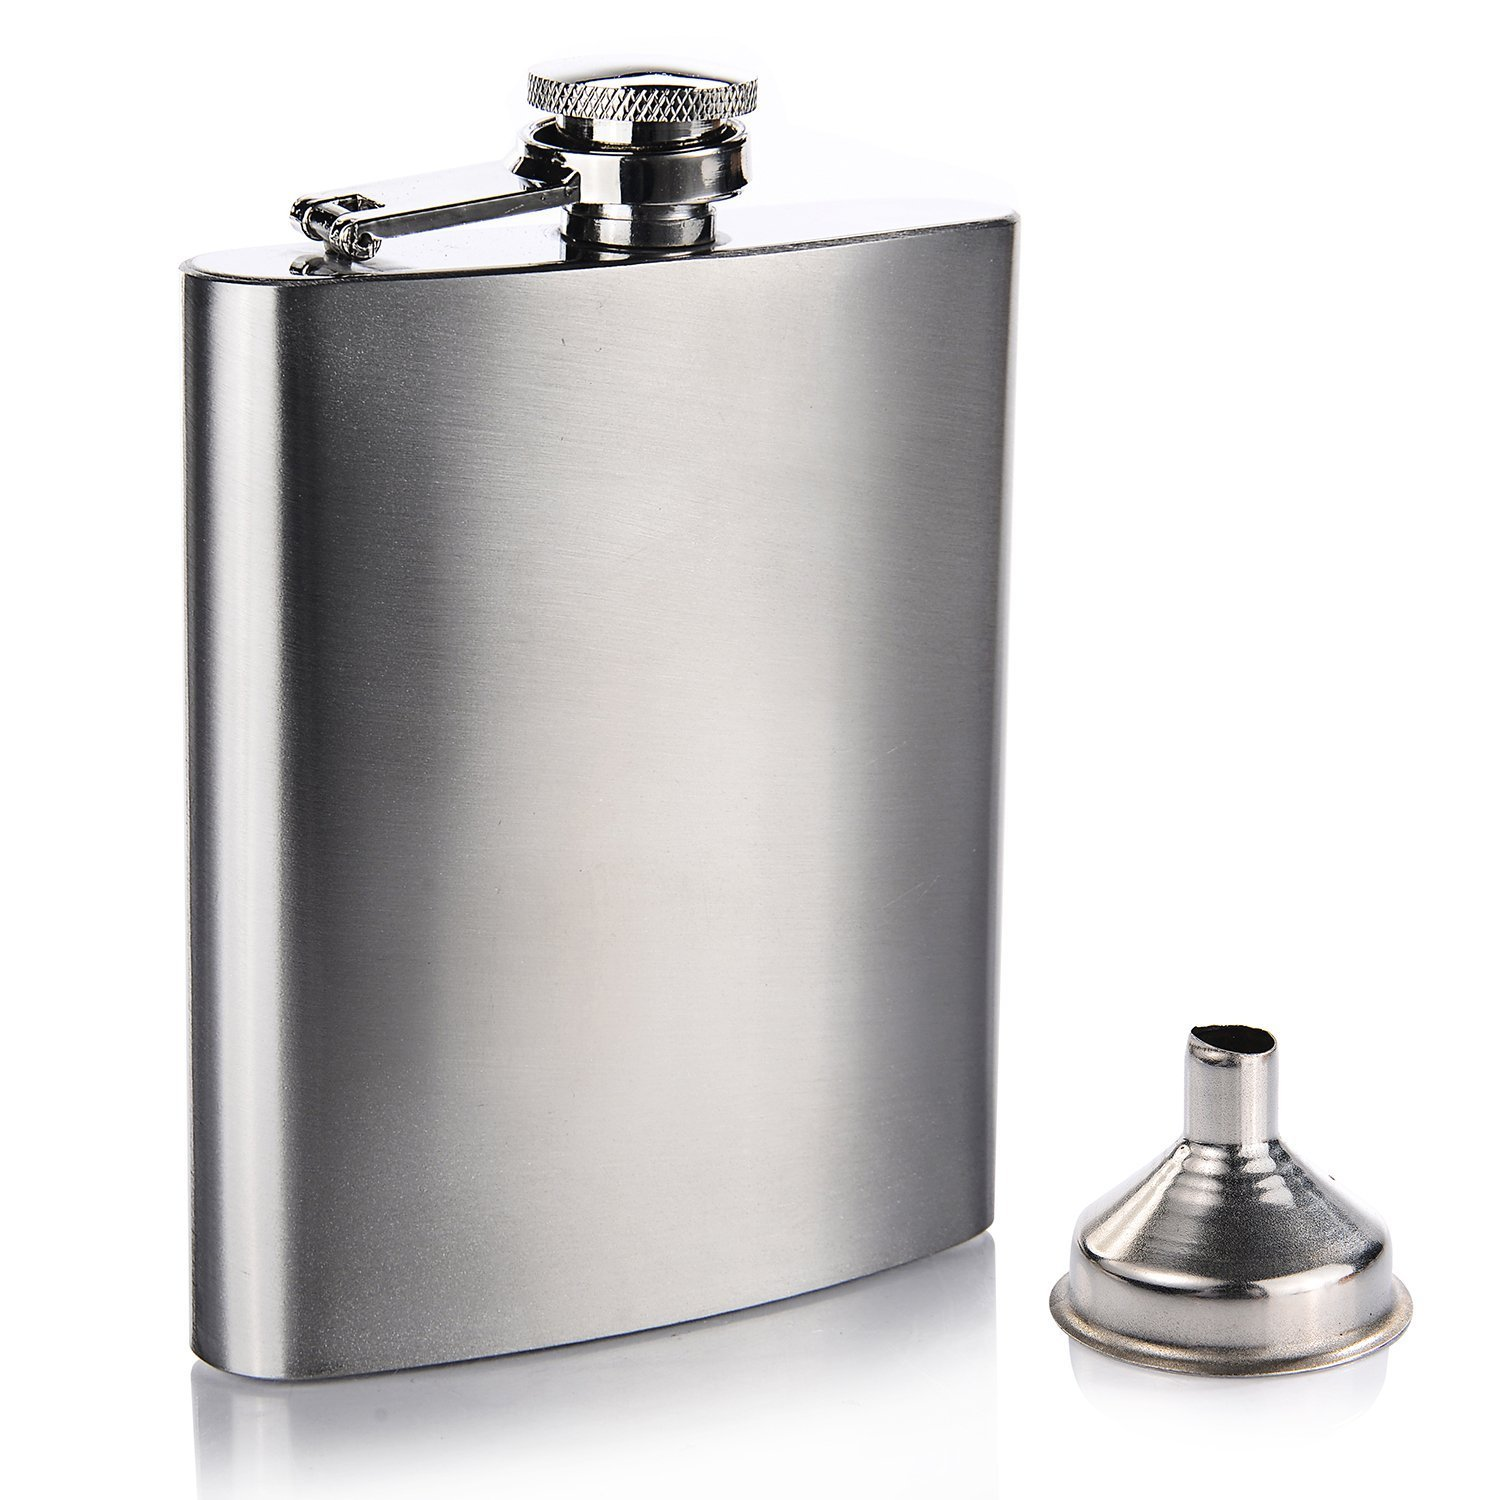 Stainless Steel Hip Flask and Funnel Set, 7 oz - Leak Proof